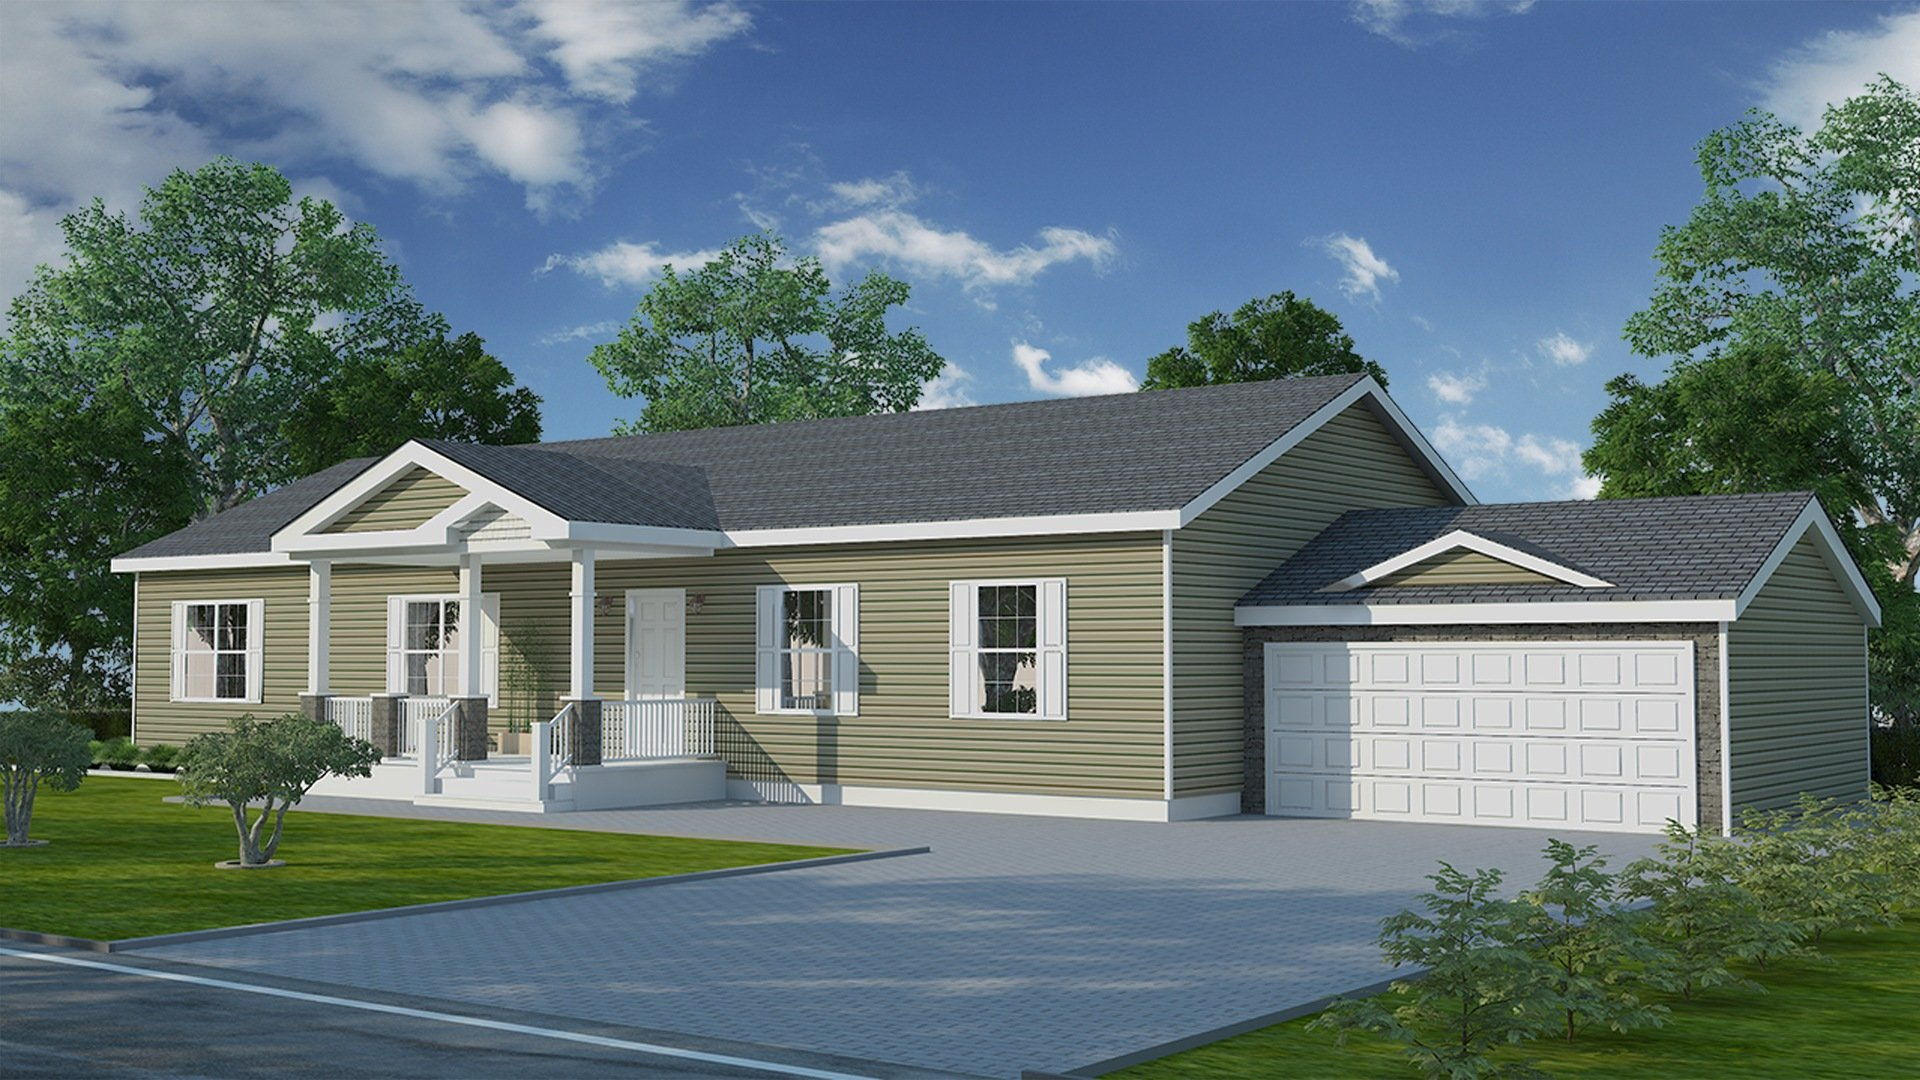 Willow Ranch Modular Home - 1,840 SF - 3 Bed 2 Bath - Next Modular